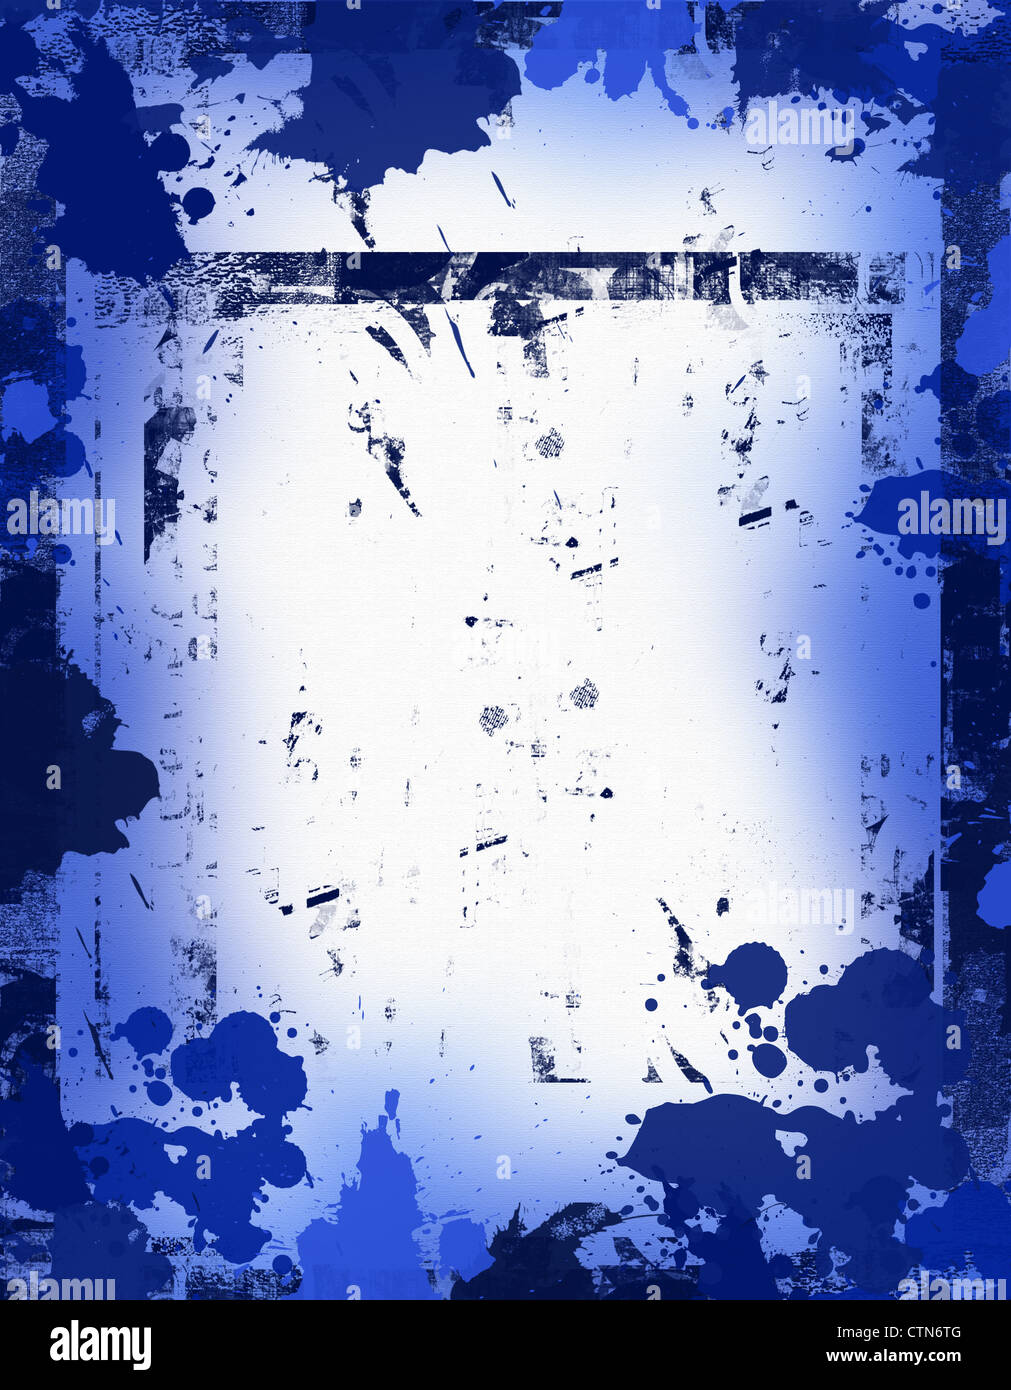 Blue ink grunge texture background Stock Photo